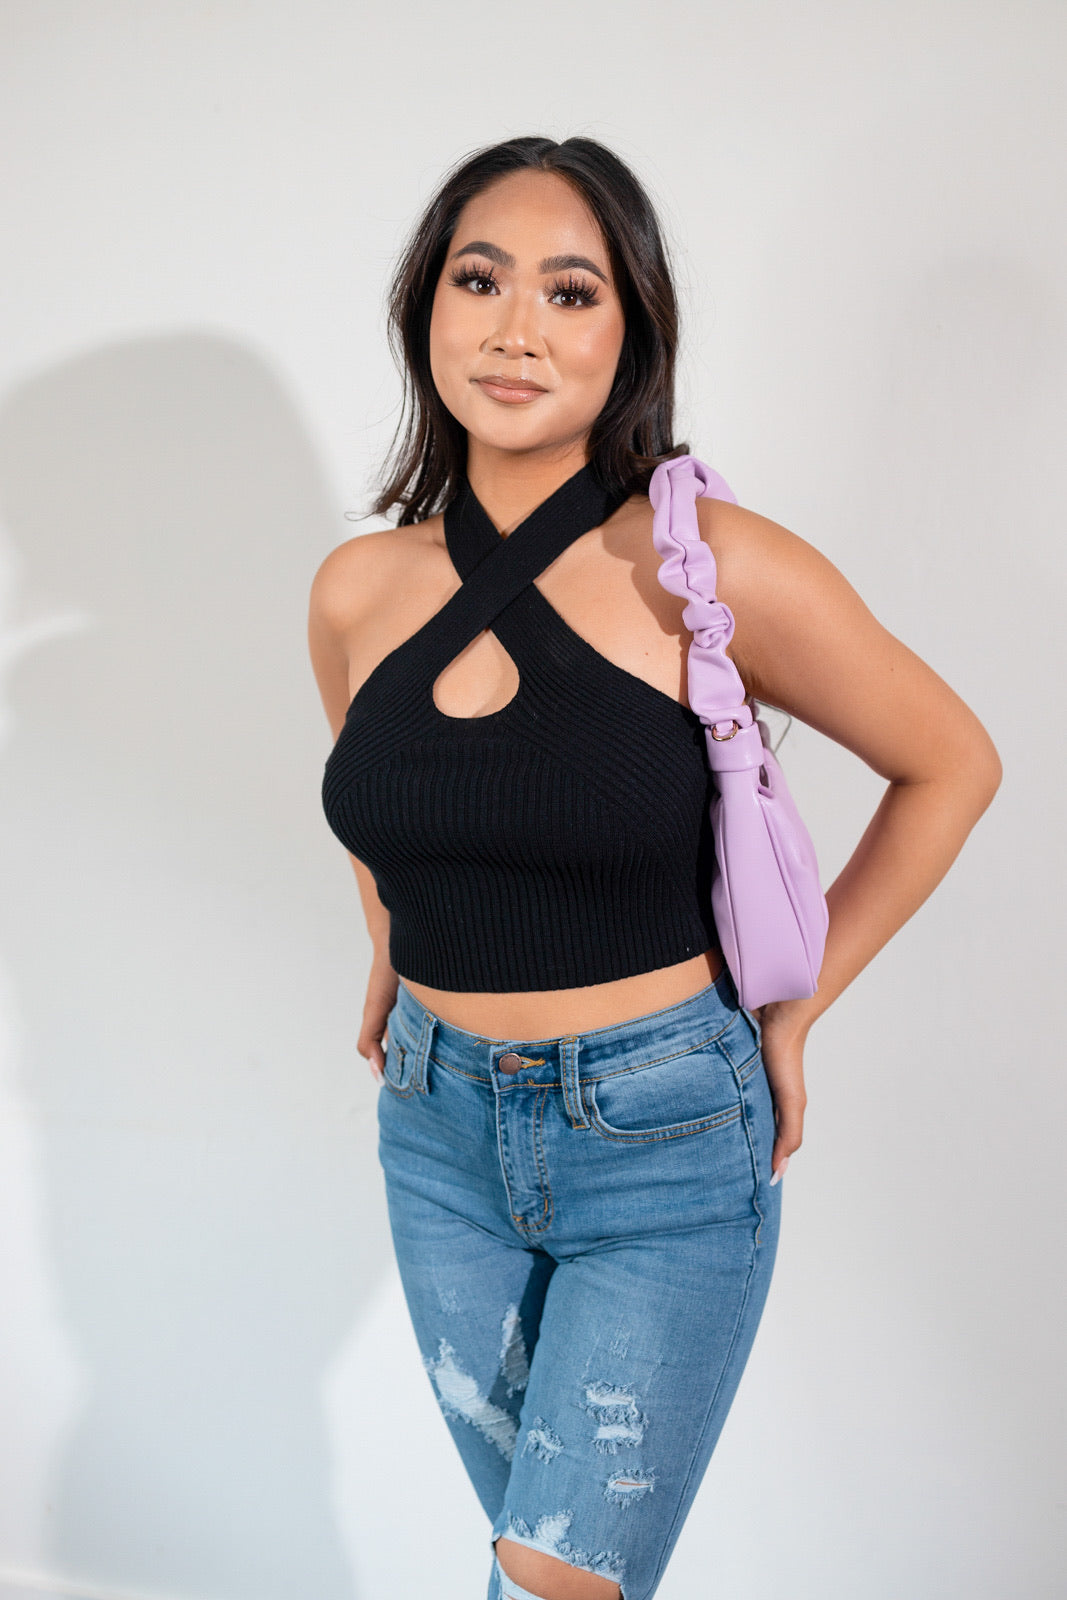 We are obsessing over our best seller Snow knit crop top in a new color black.  This is a knit halter top  with a keyhole detail. Cropped top has a good stretch and is very soft. Complete the look with our Malika distressed jeans and our Ella pleated shoulder bag.